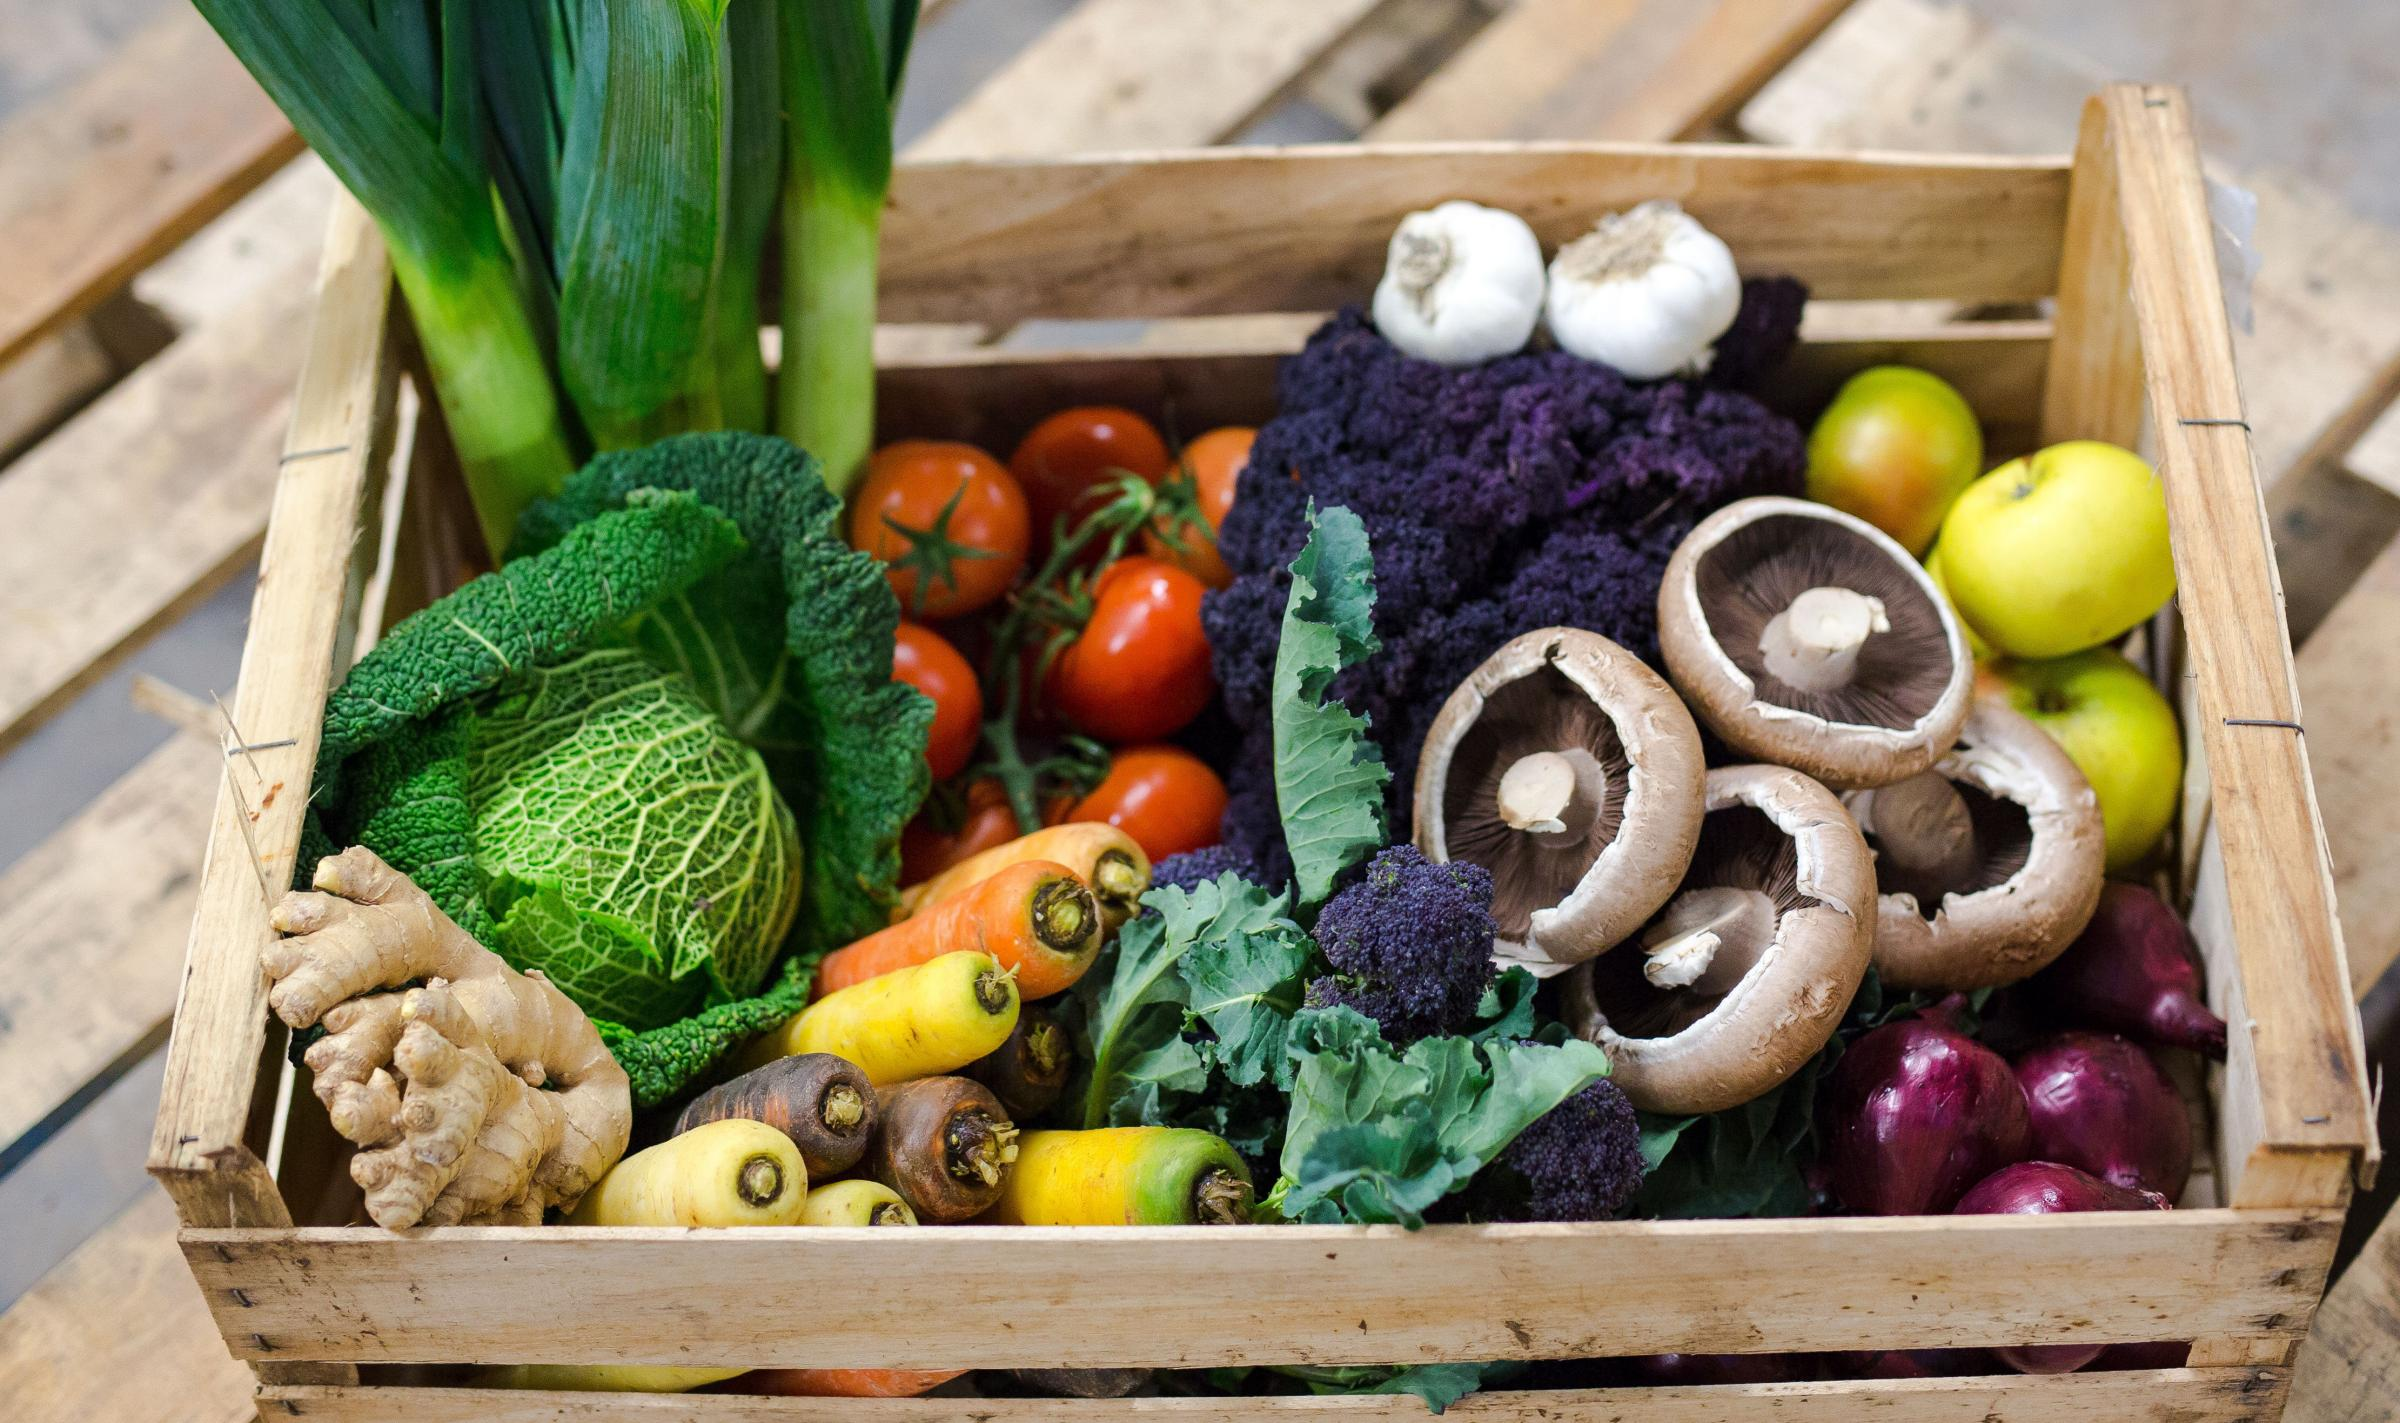 There is growing interest in vegetable box schemes